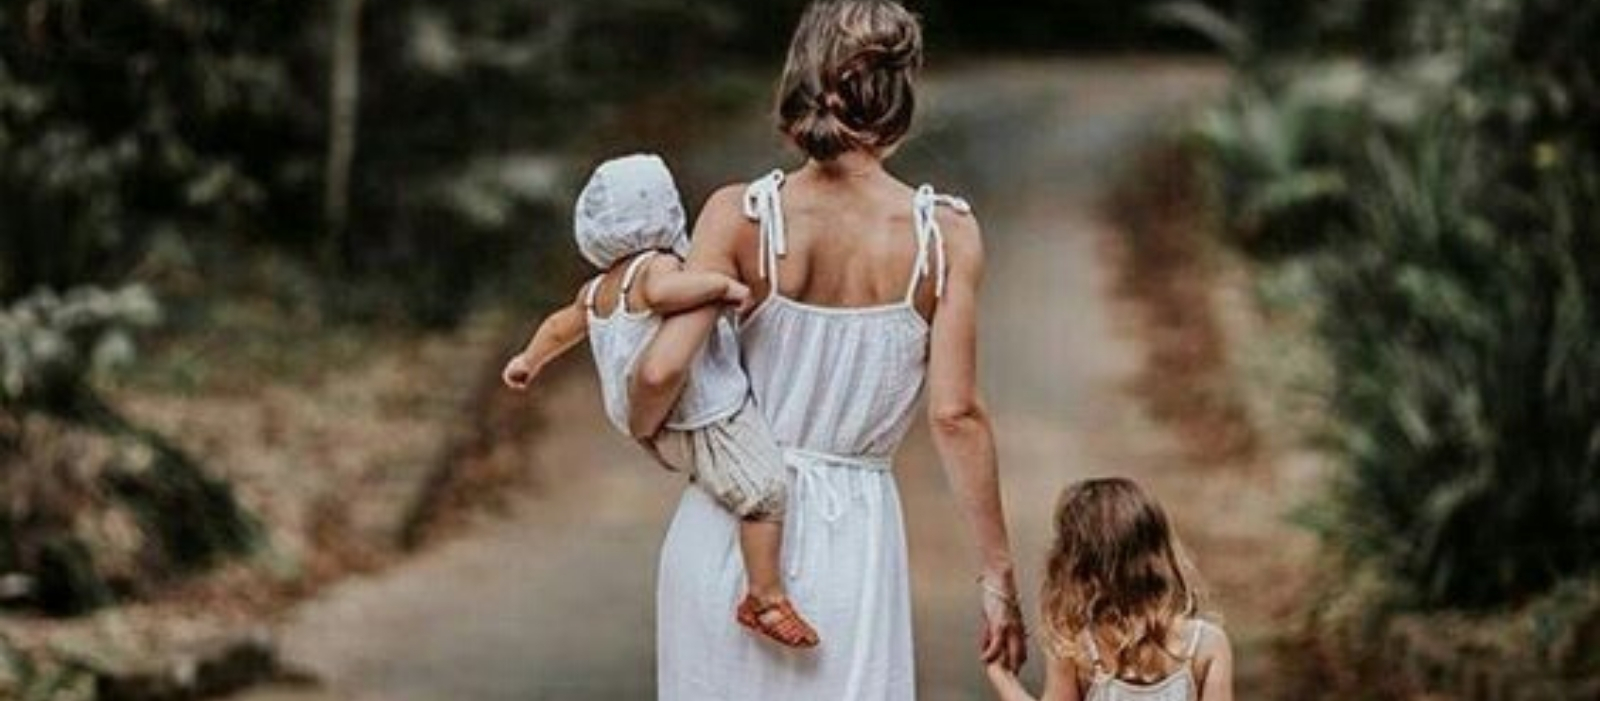 Mom with two kids, white dresses